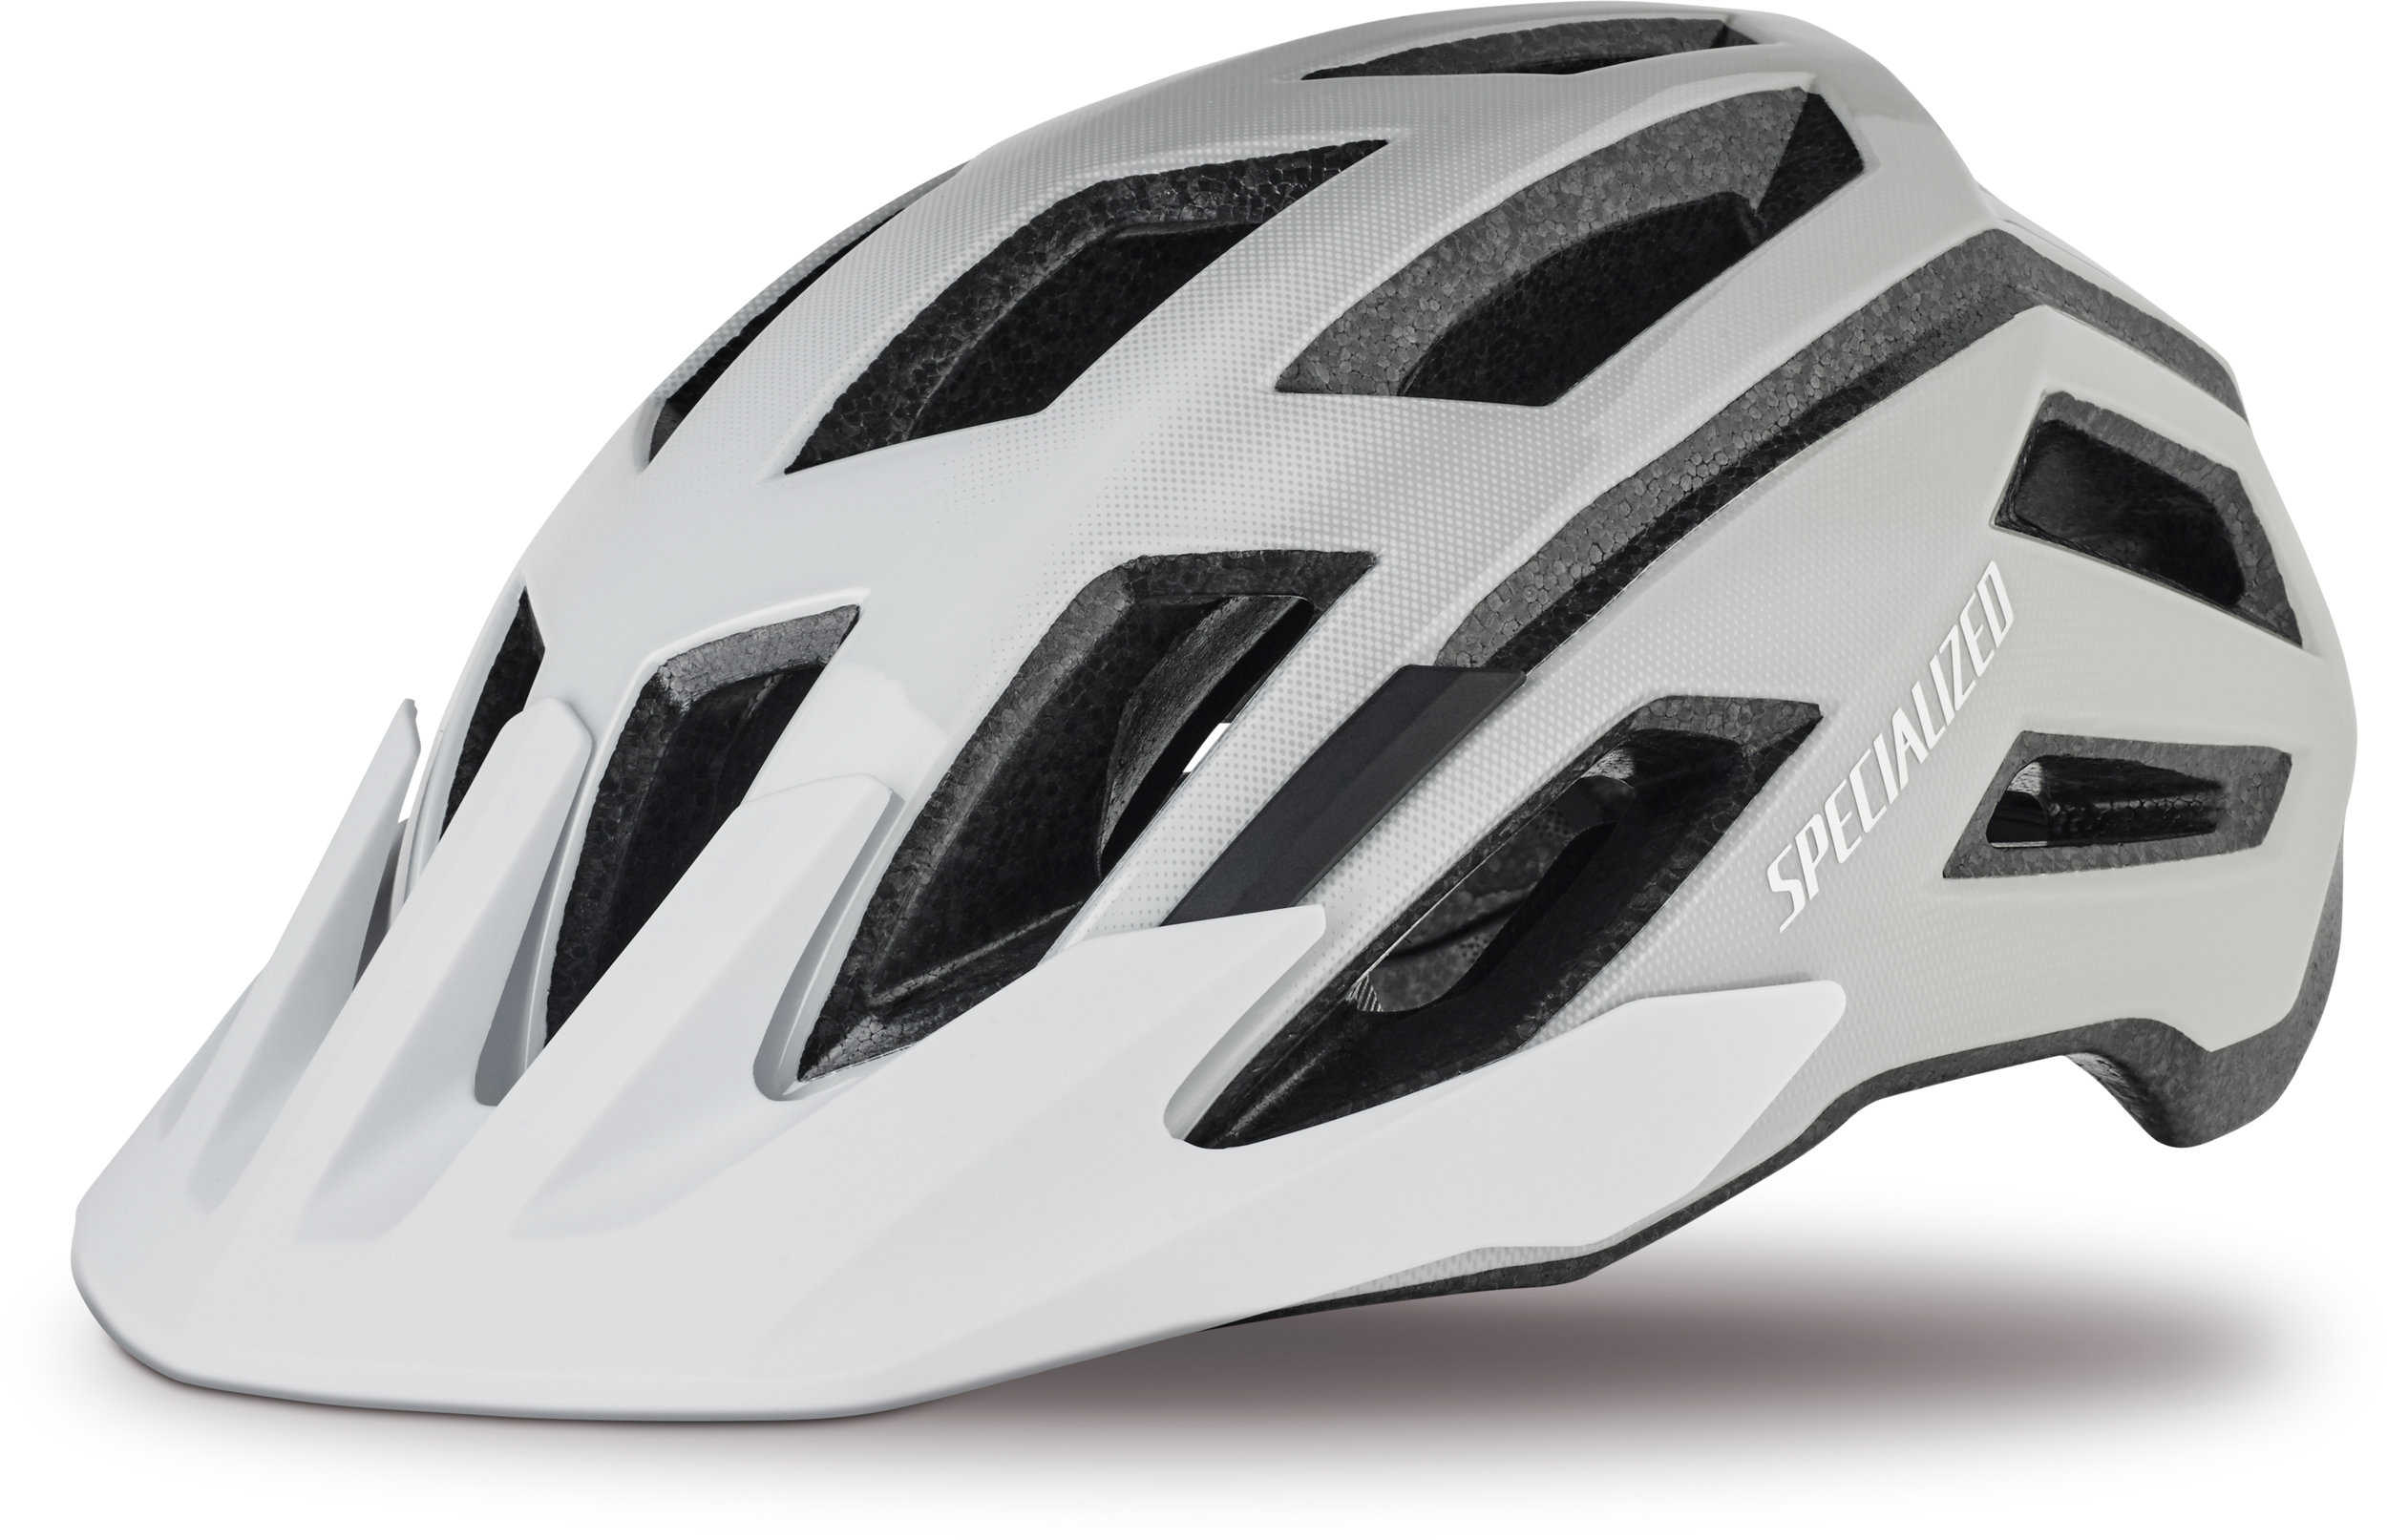 Specialized Tactic 3 Gloss White M - Alpha Bikes